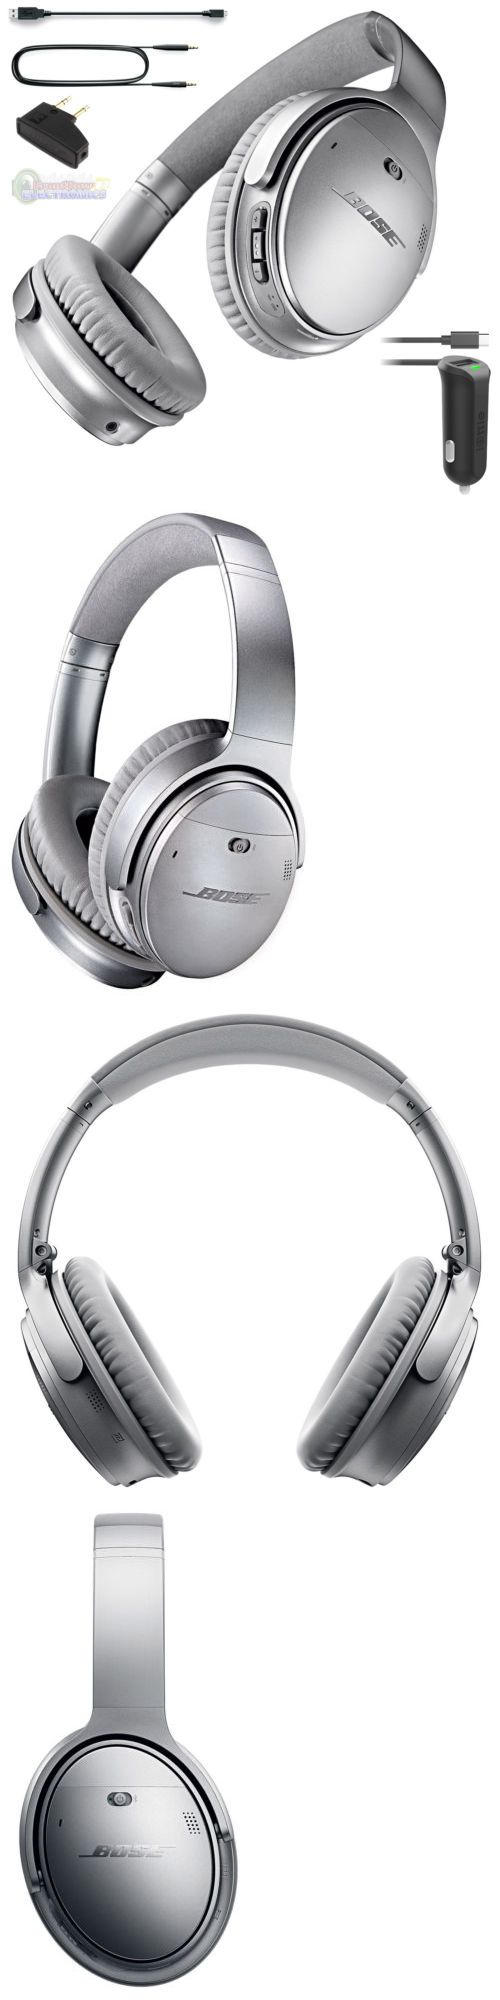 Headsets and Earpieces: Bose Quietcomfort Qc 35 Wireless Noise Cancelling Headphones Silver And Car Charge -> BUY IT NOW ONLY: $358.95 on eBay!